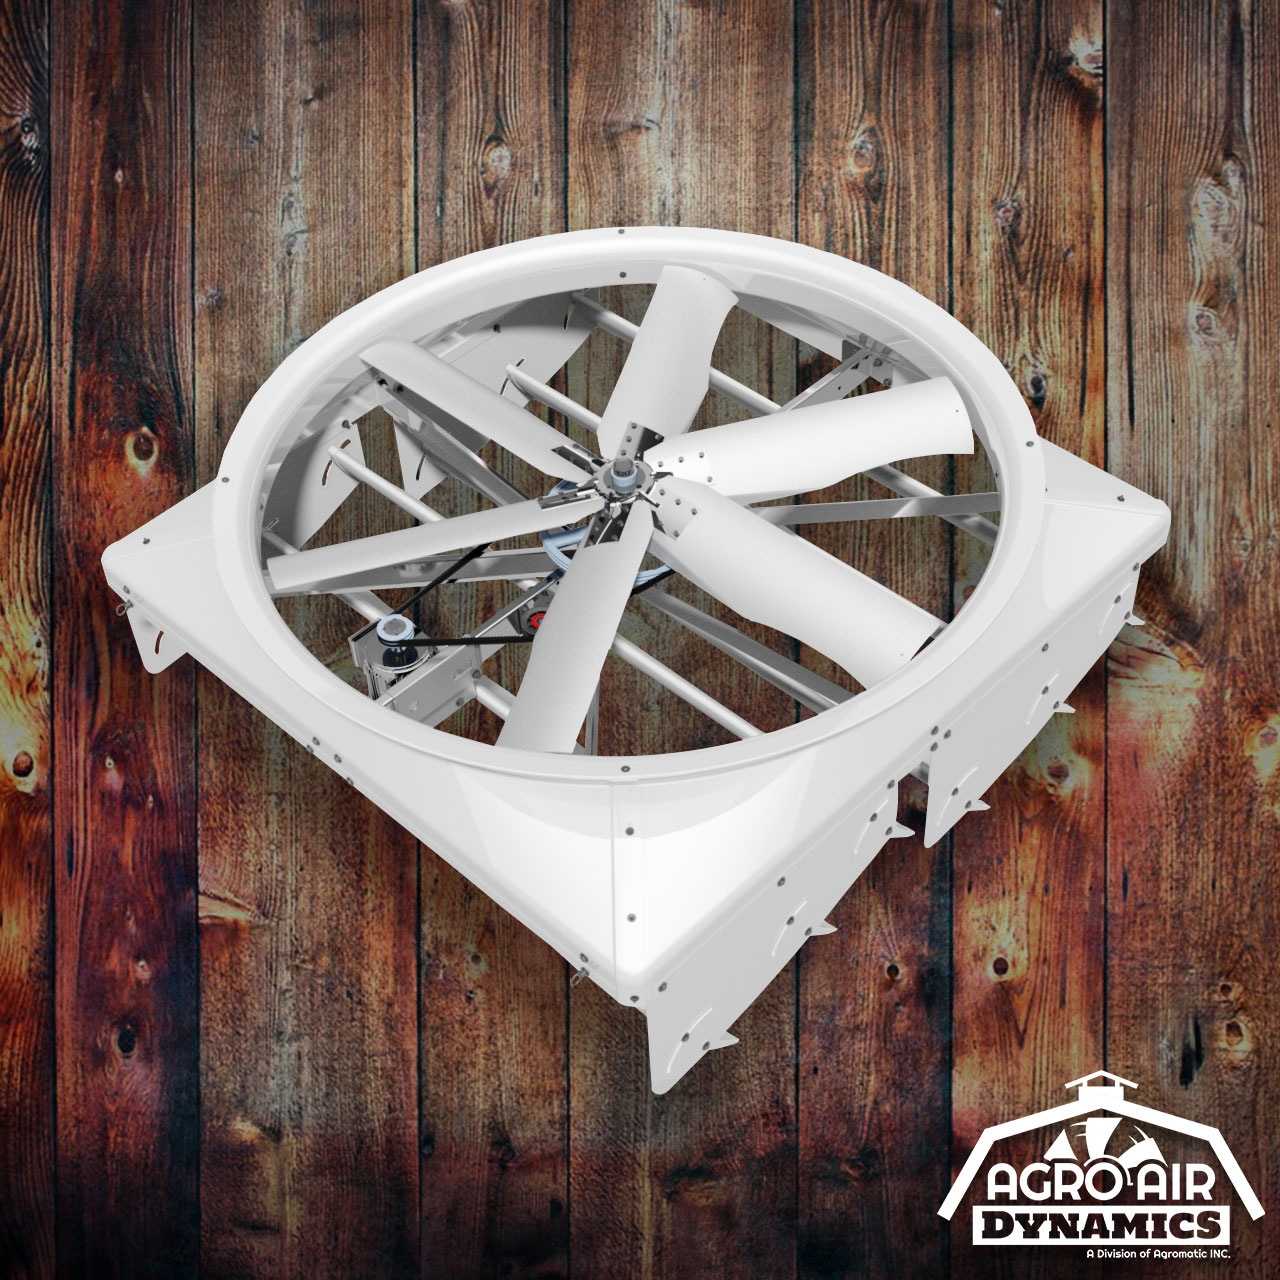 Cyclone Fans For Sale   Agro Air Dynamics   Recirculating Fans